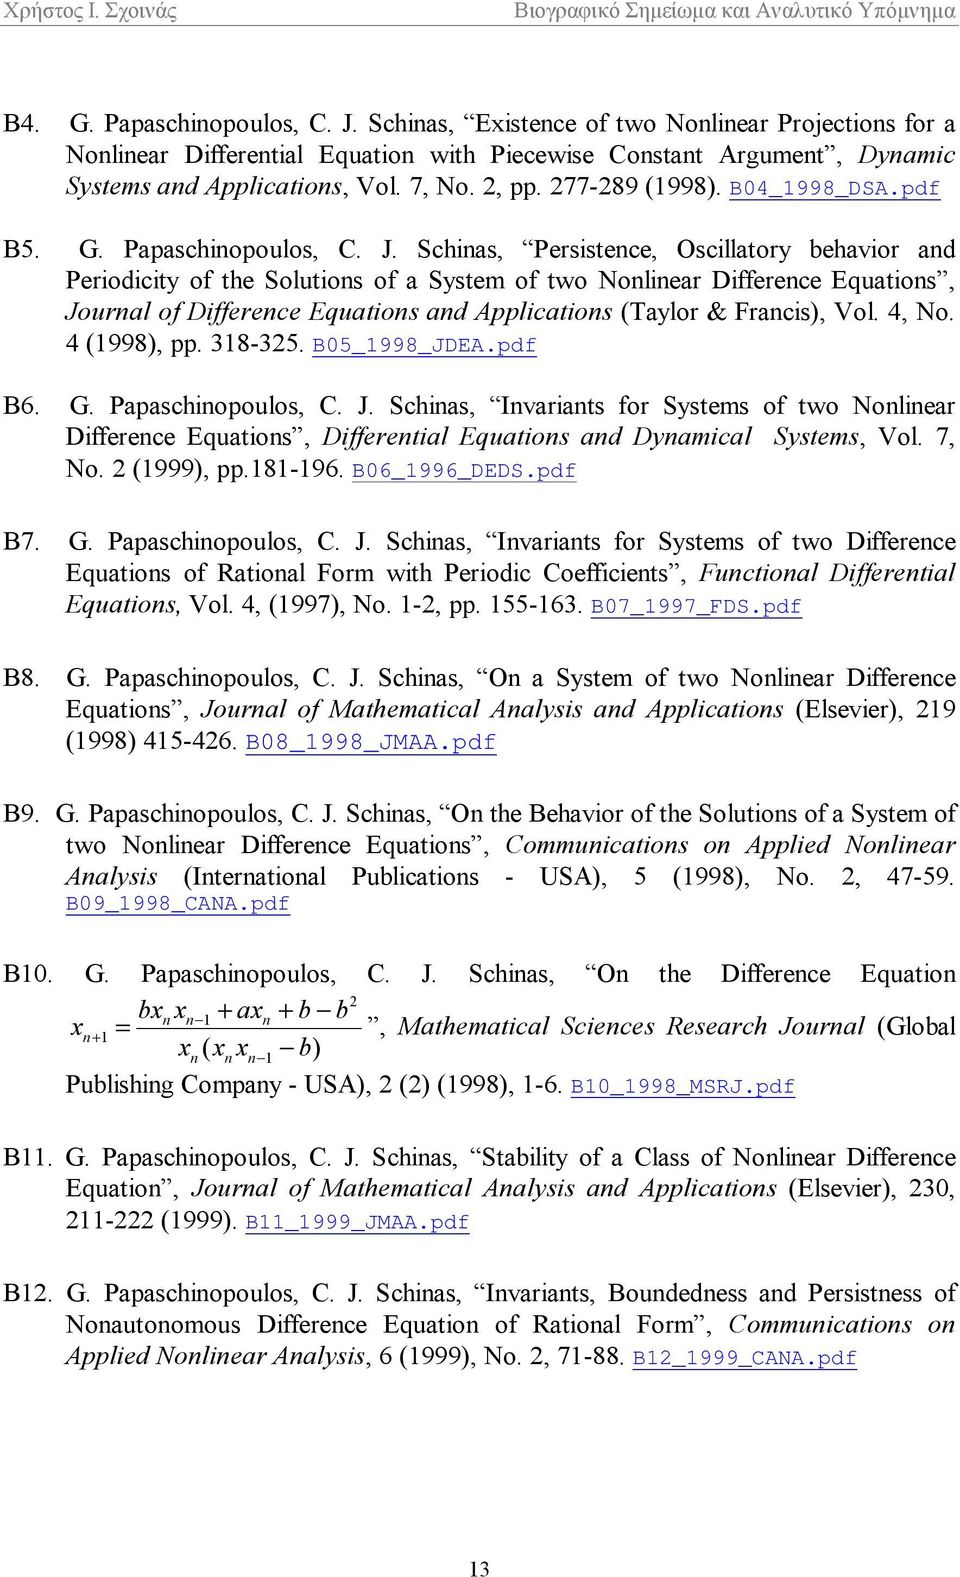 Schinas, Persistence, Oscillatory behavior and Periodicity of the Solutions of a System of two Nonlinear Difference Equations, Journal of Difference Equations and Applications (Taylor & Francis), Vol.